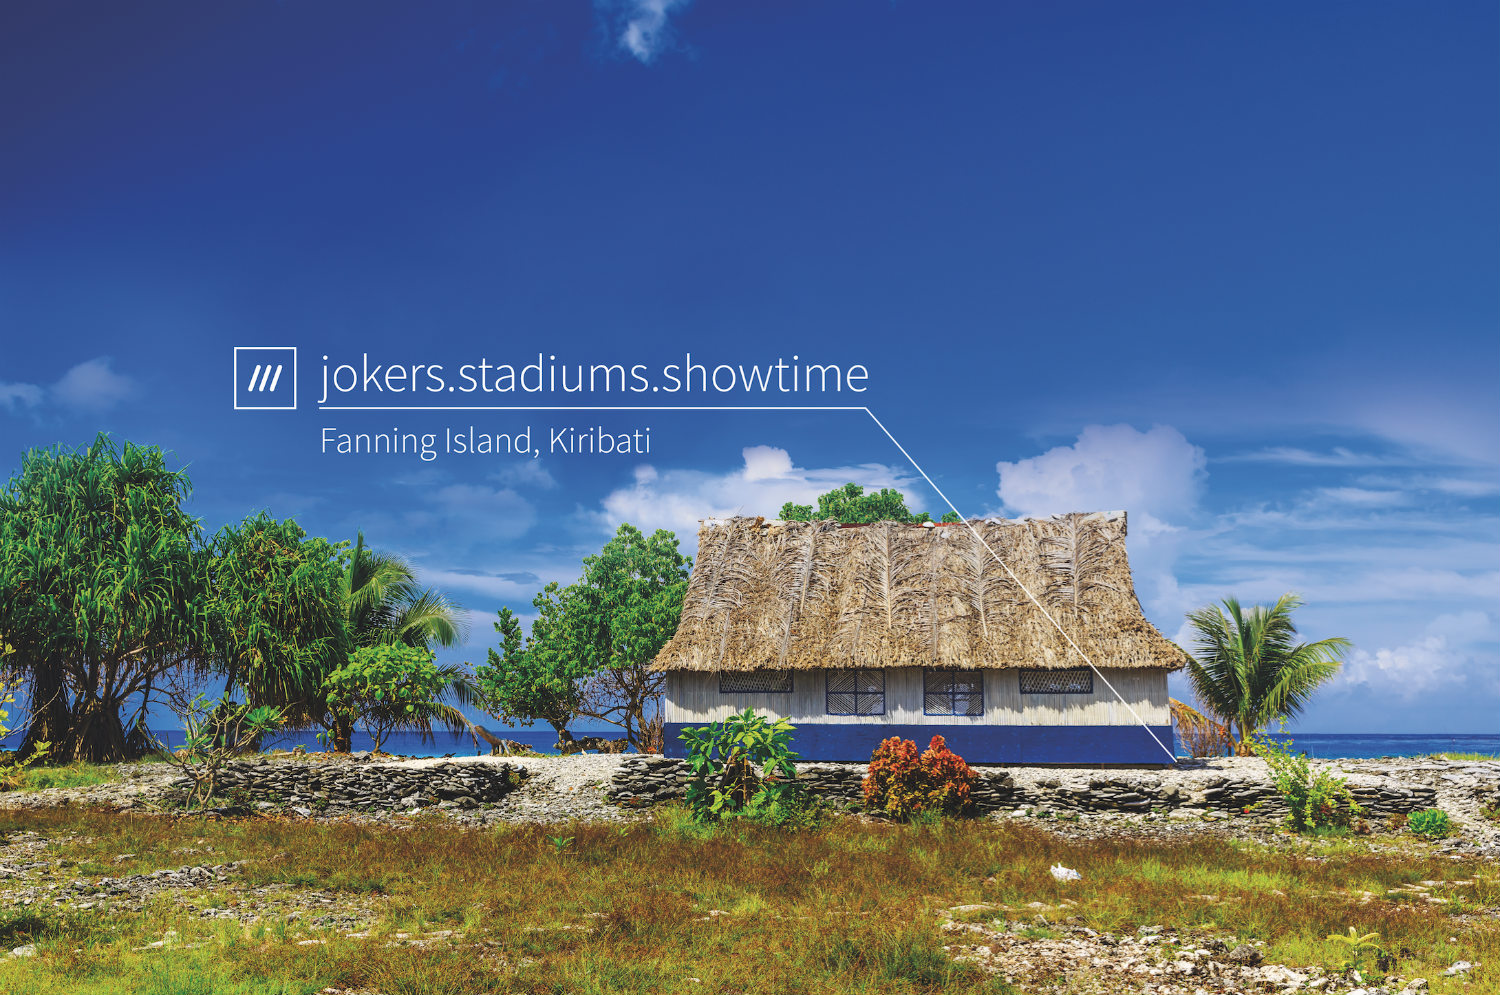 beach house on sandy grass in tropical area at 3 word address jokers.stadiums.showtime